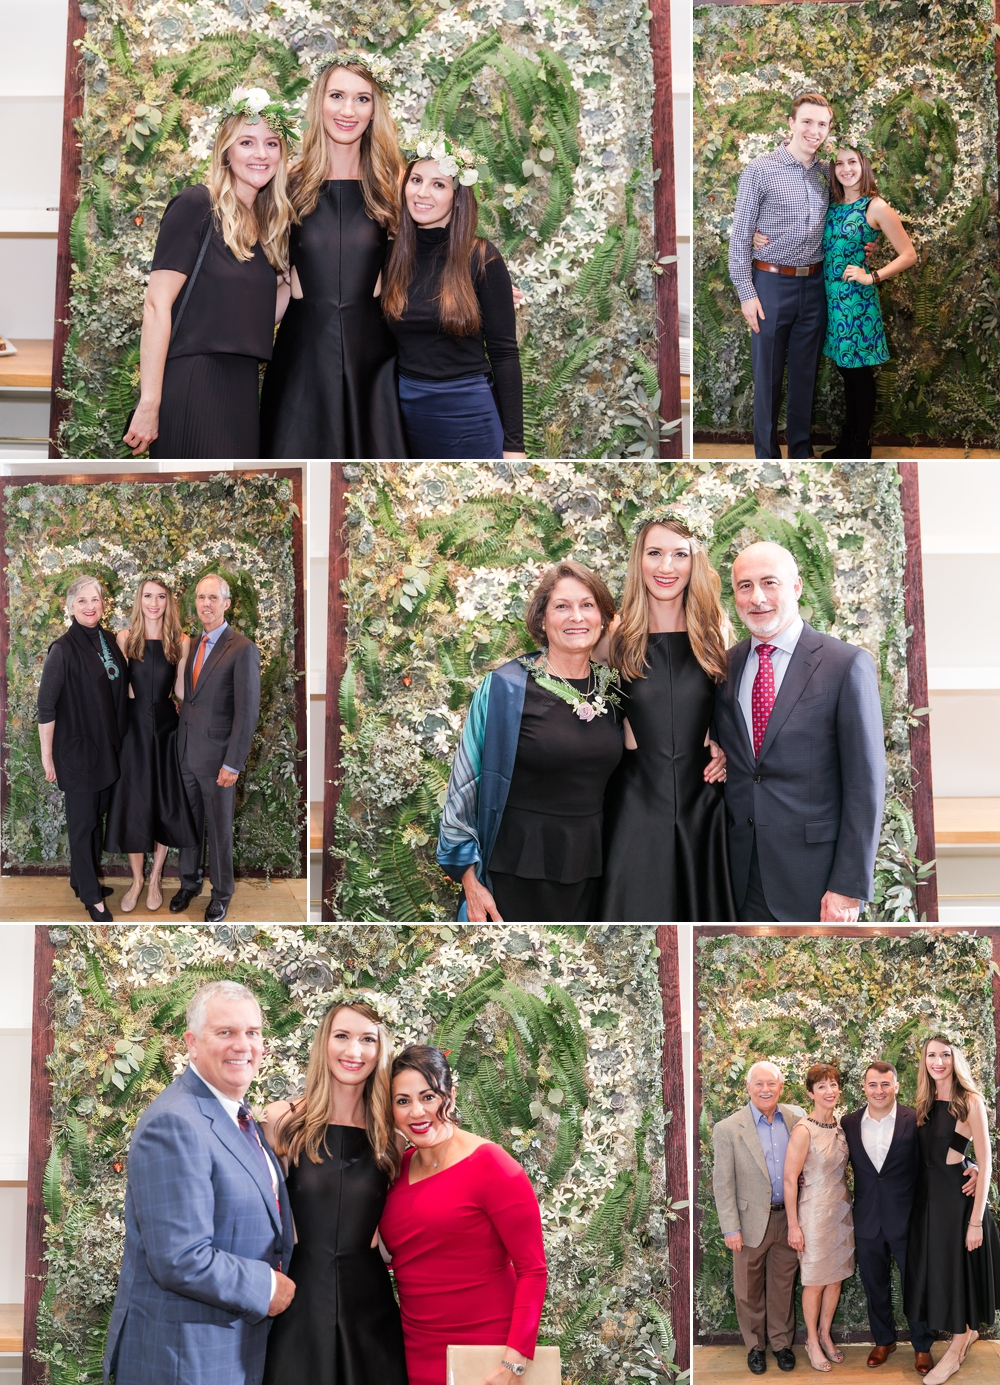 birthday-guests-in-front-of-floral-wall